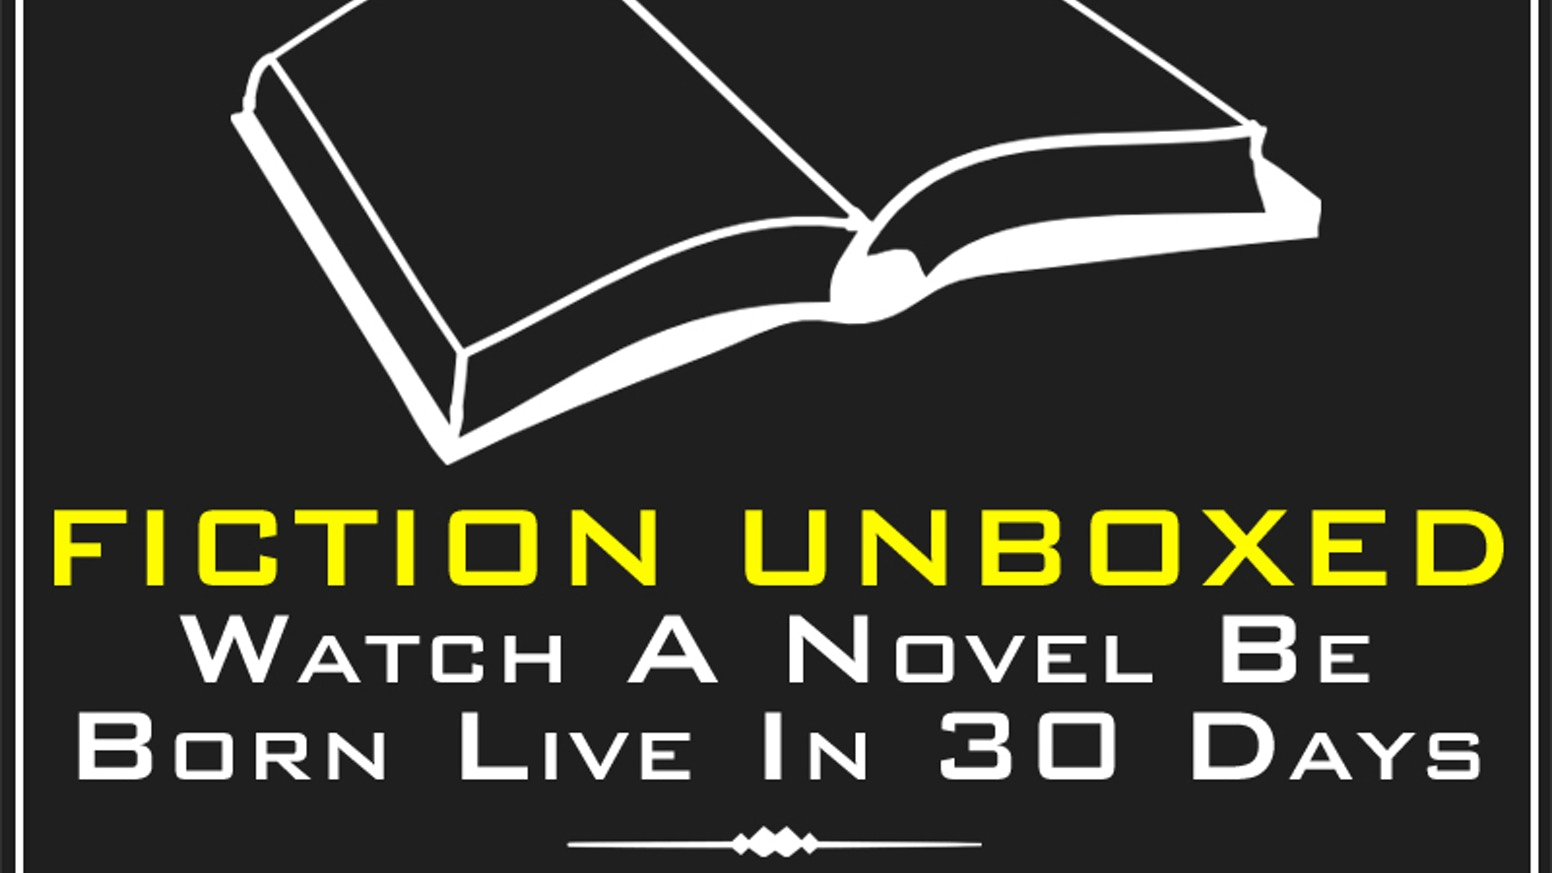 Fiction Unboxed: Change the World With a Story by Sean Platt